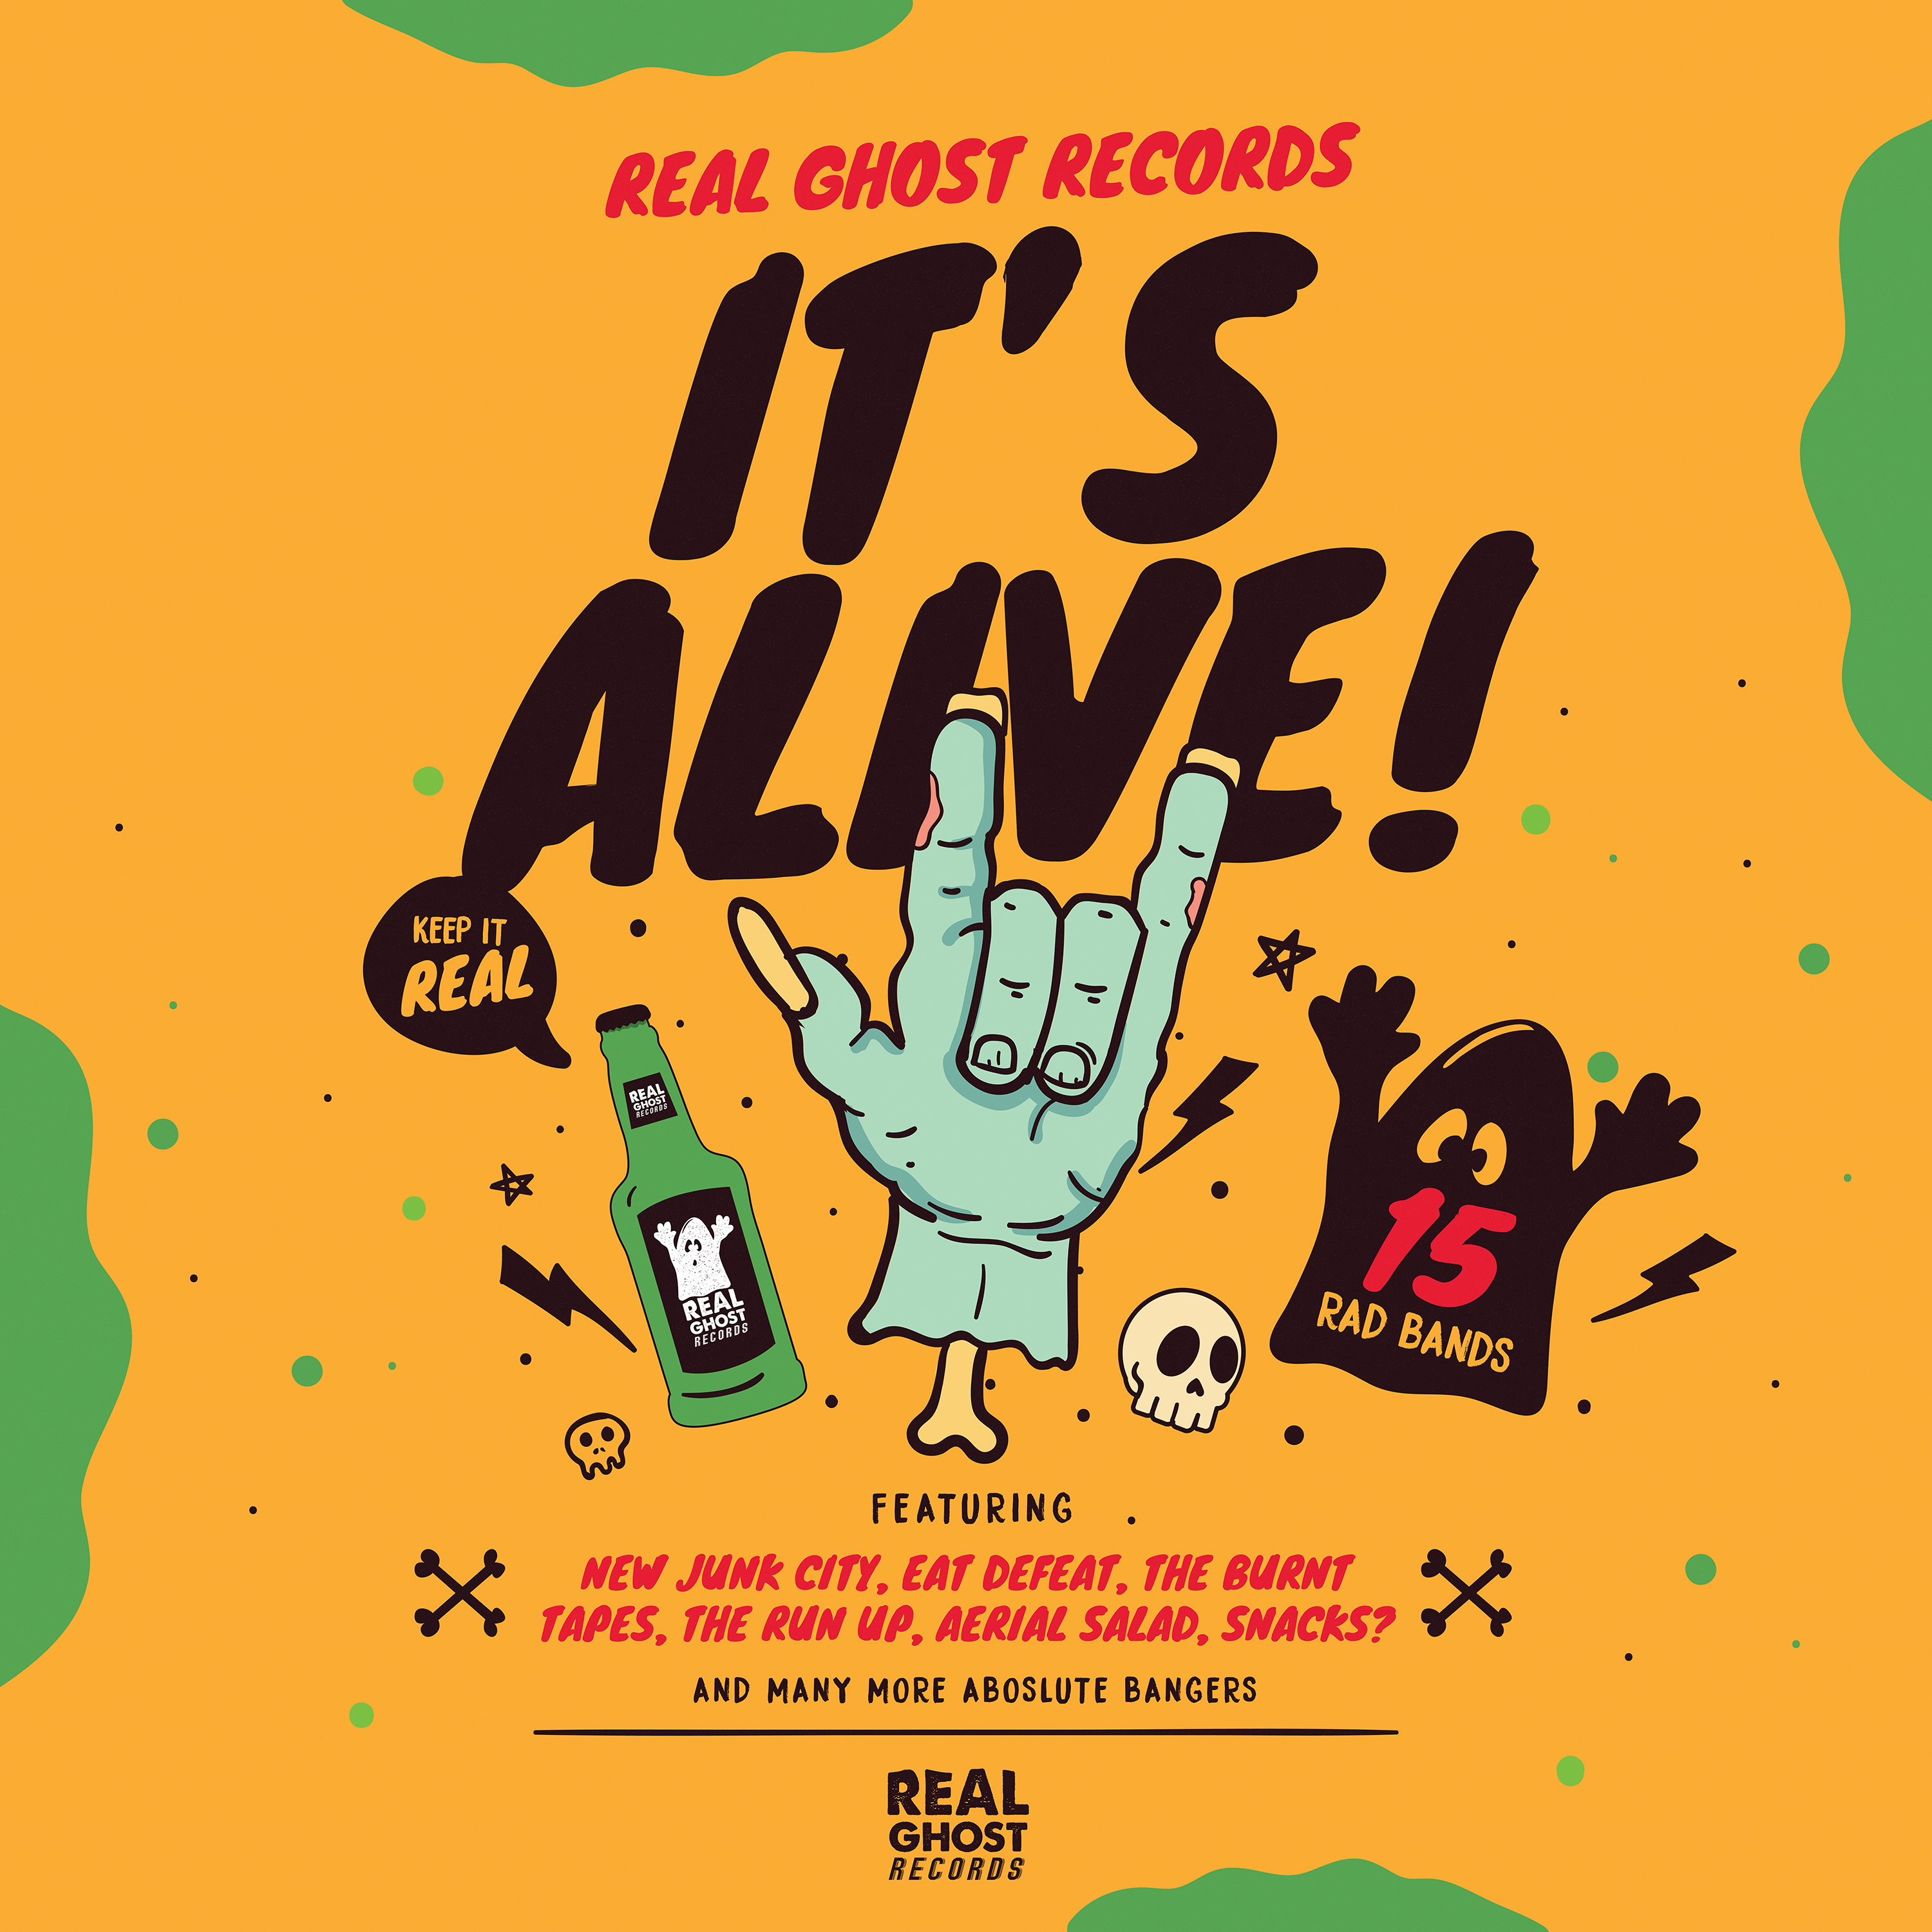 Real Ghost Records - IT'S ALIVE!